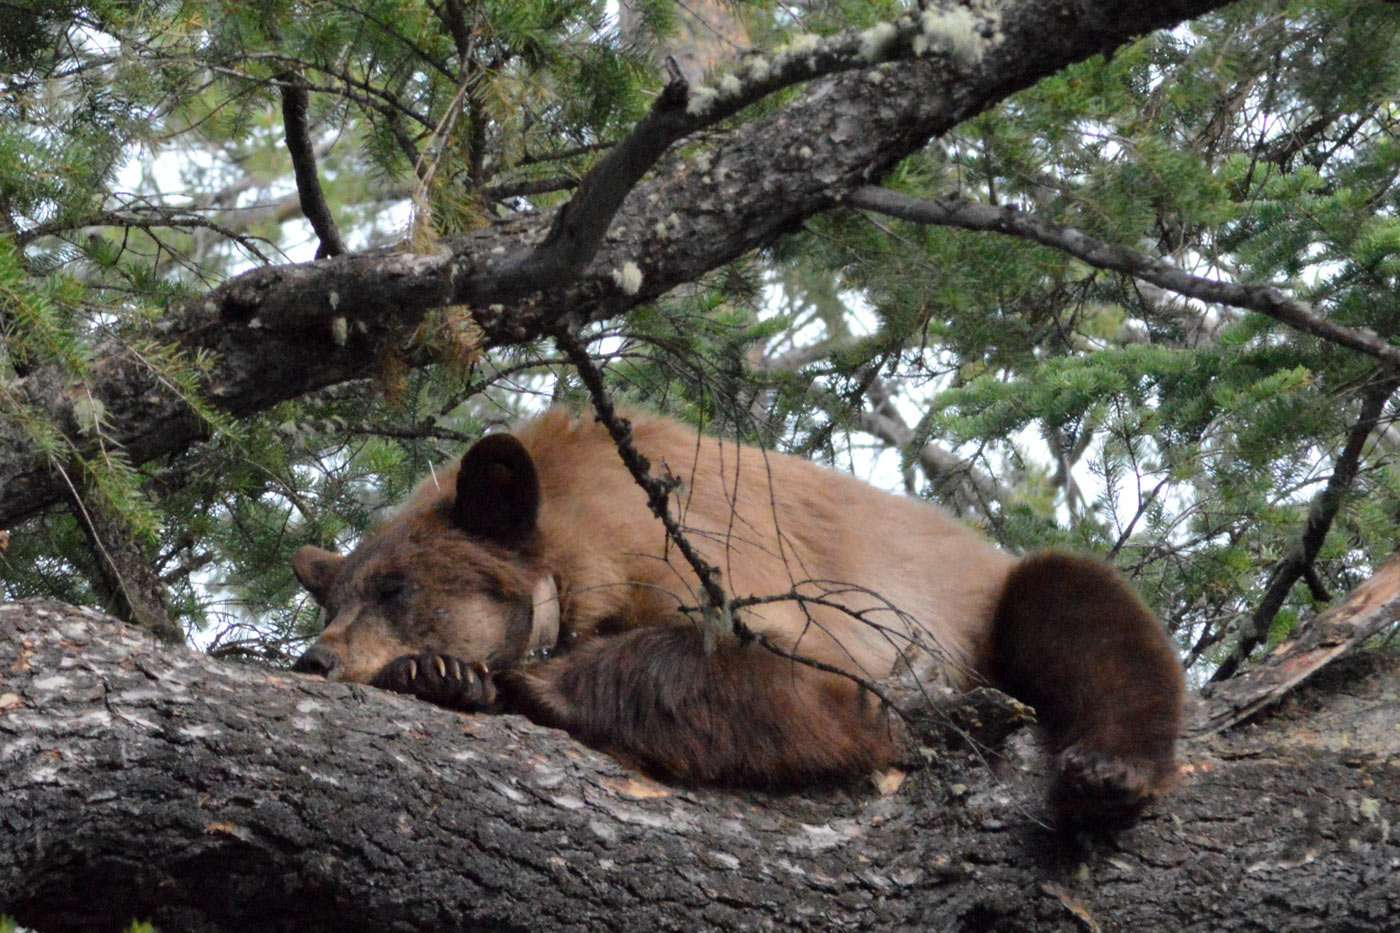 a grizzly bear sleeps in a tree